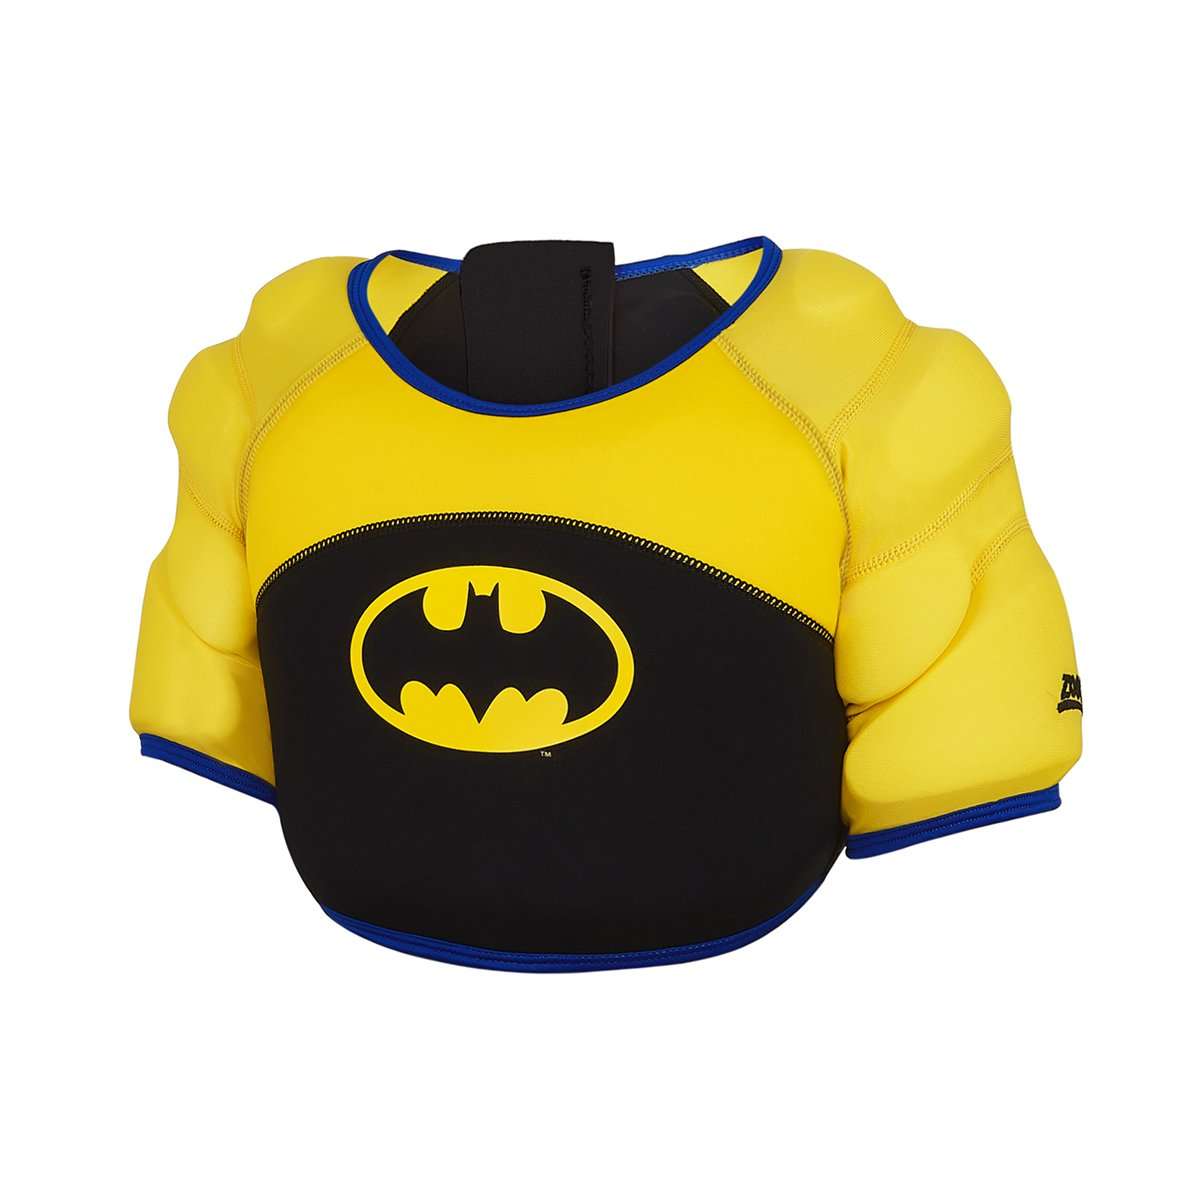 Batman Water Wings Vest